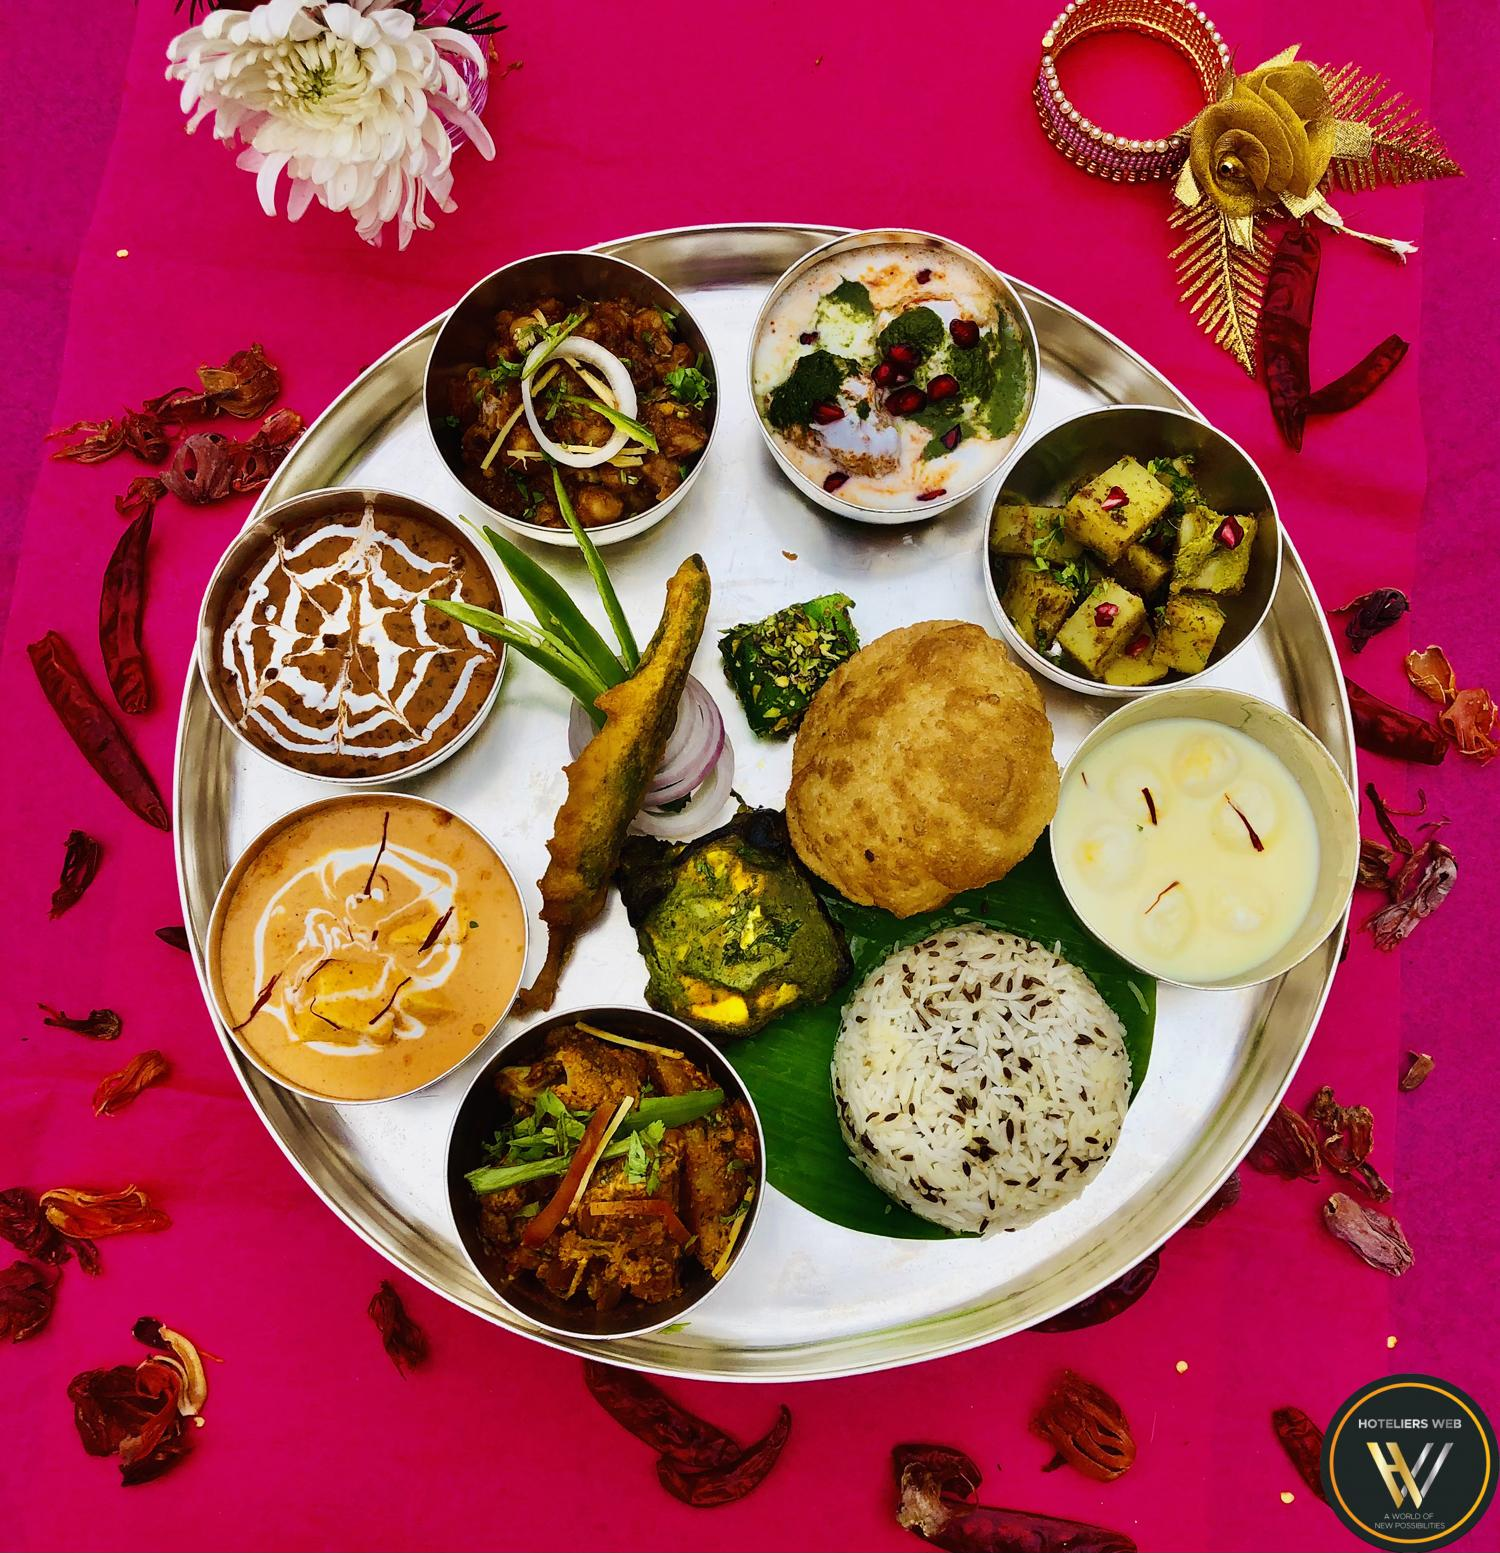 CELEBRATION OF LOVE AT 1911 RESTAURANT THIS KARVACHAUTH